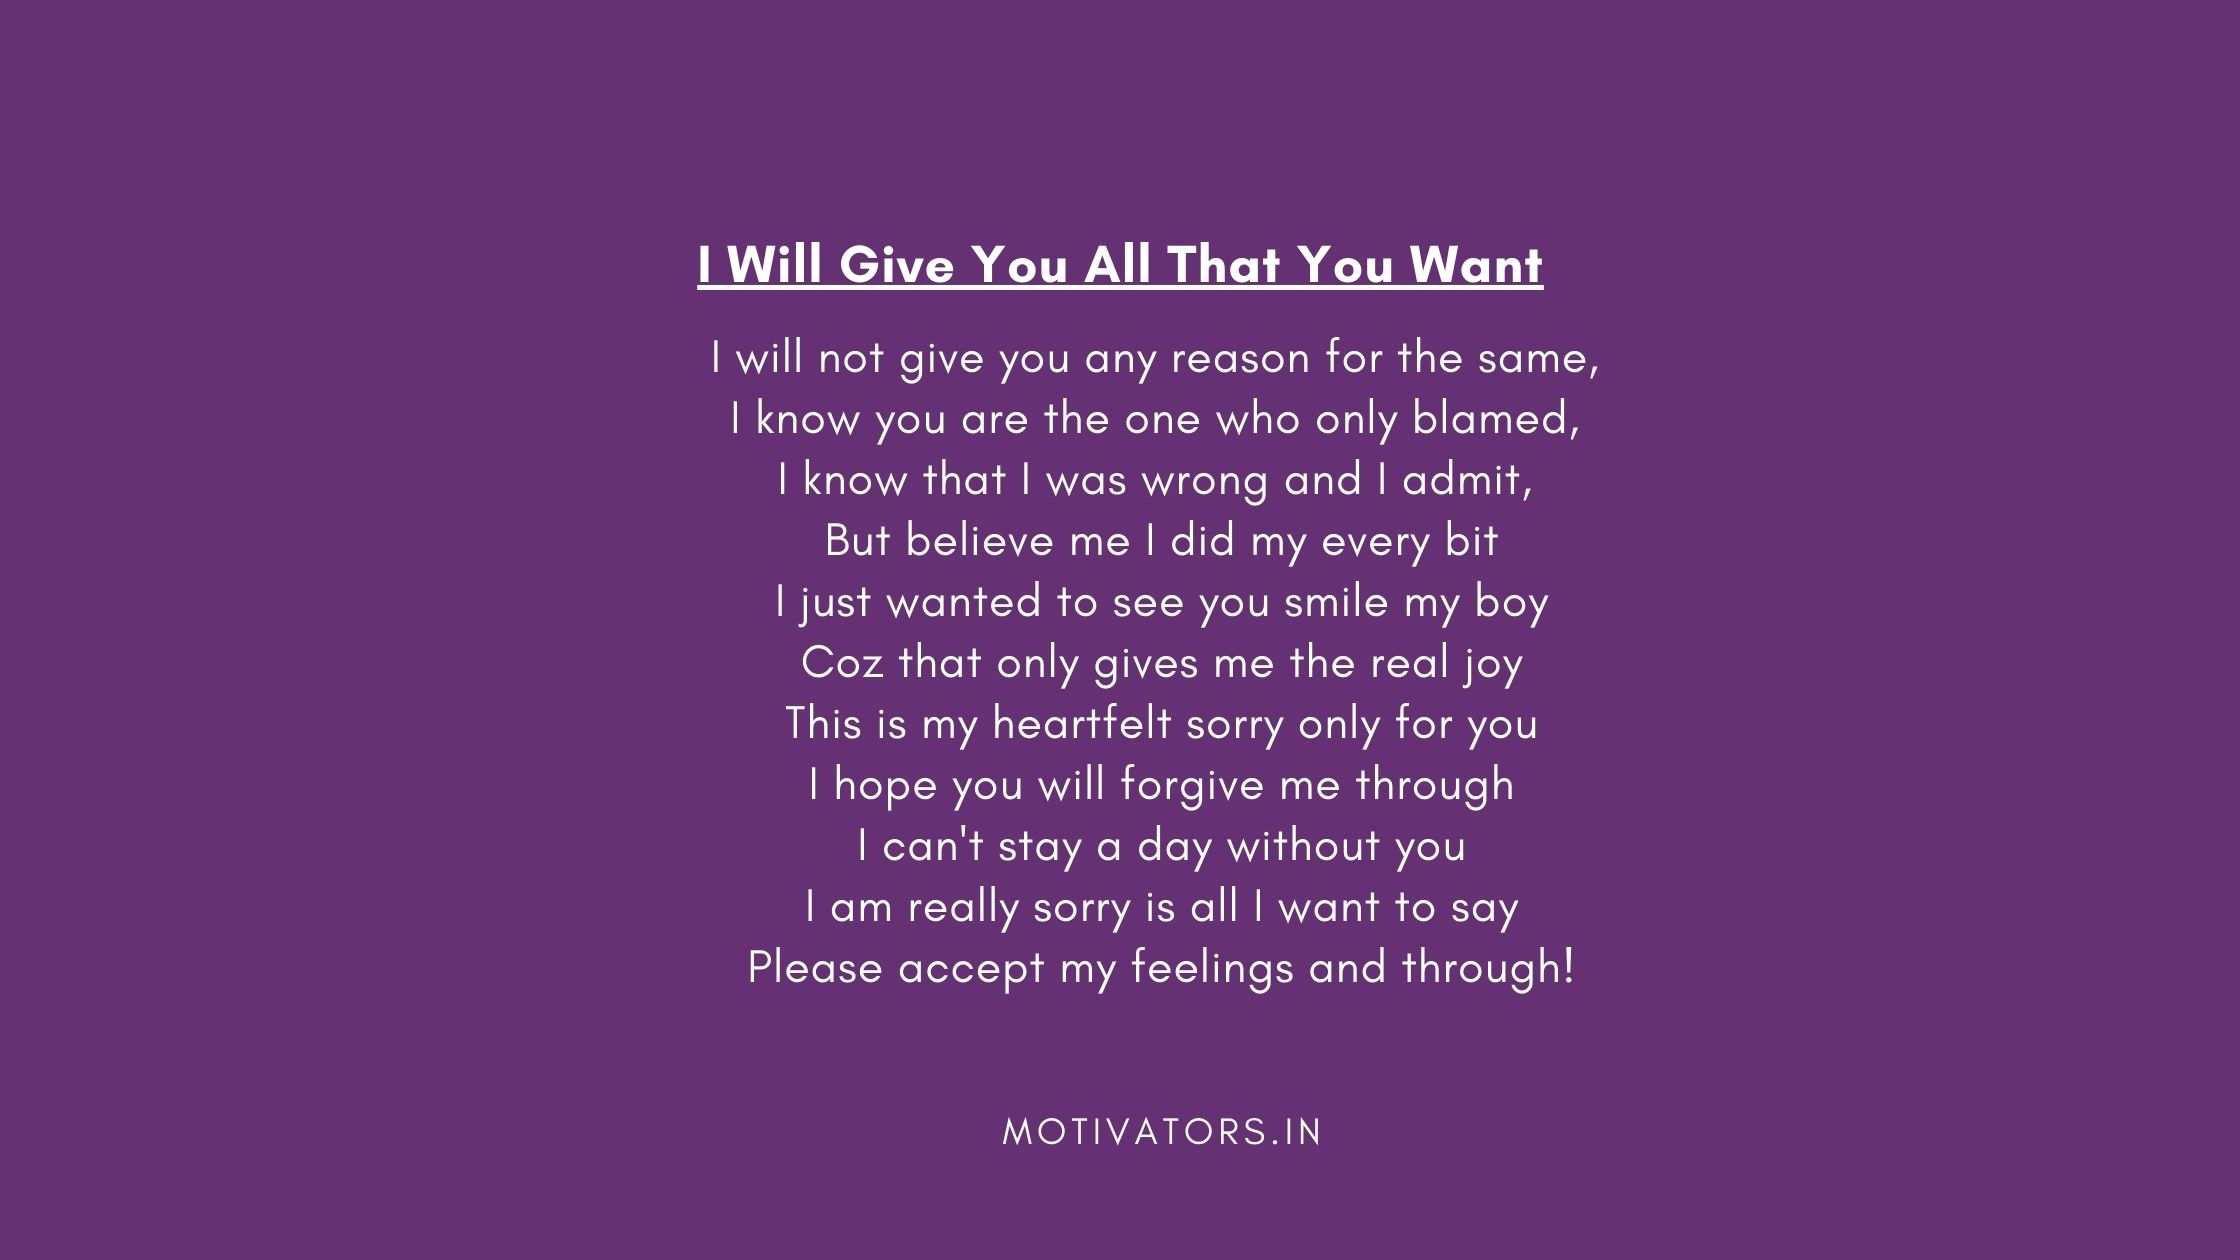 I Will Give You All That You Want